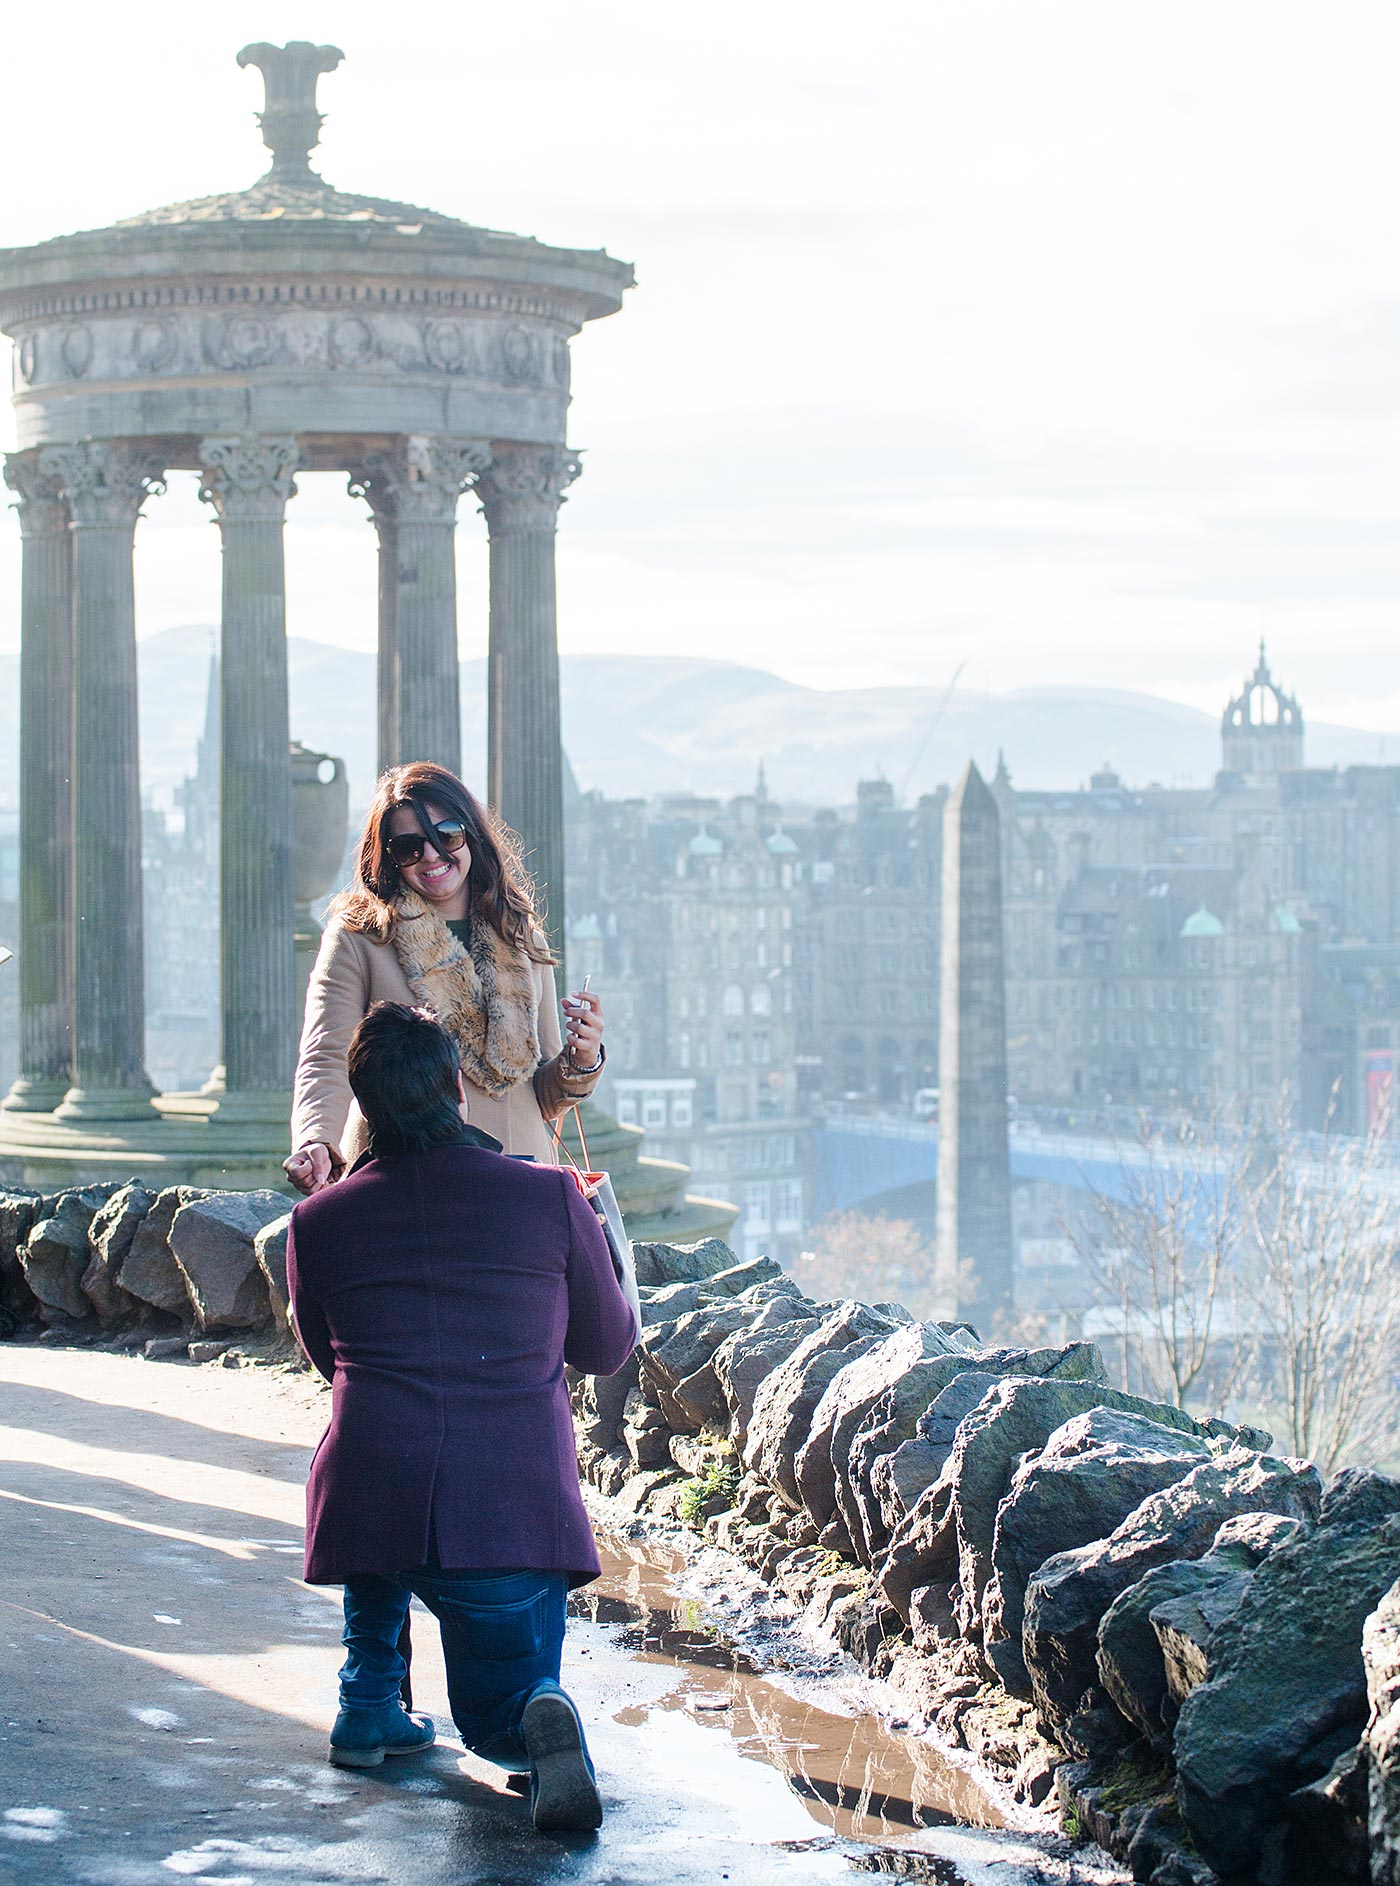 Proposal Photographs Edinburgh Calton Hill